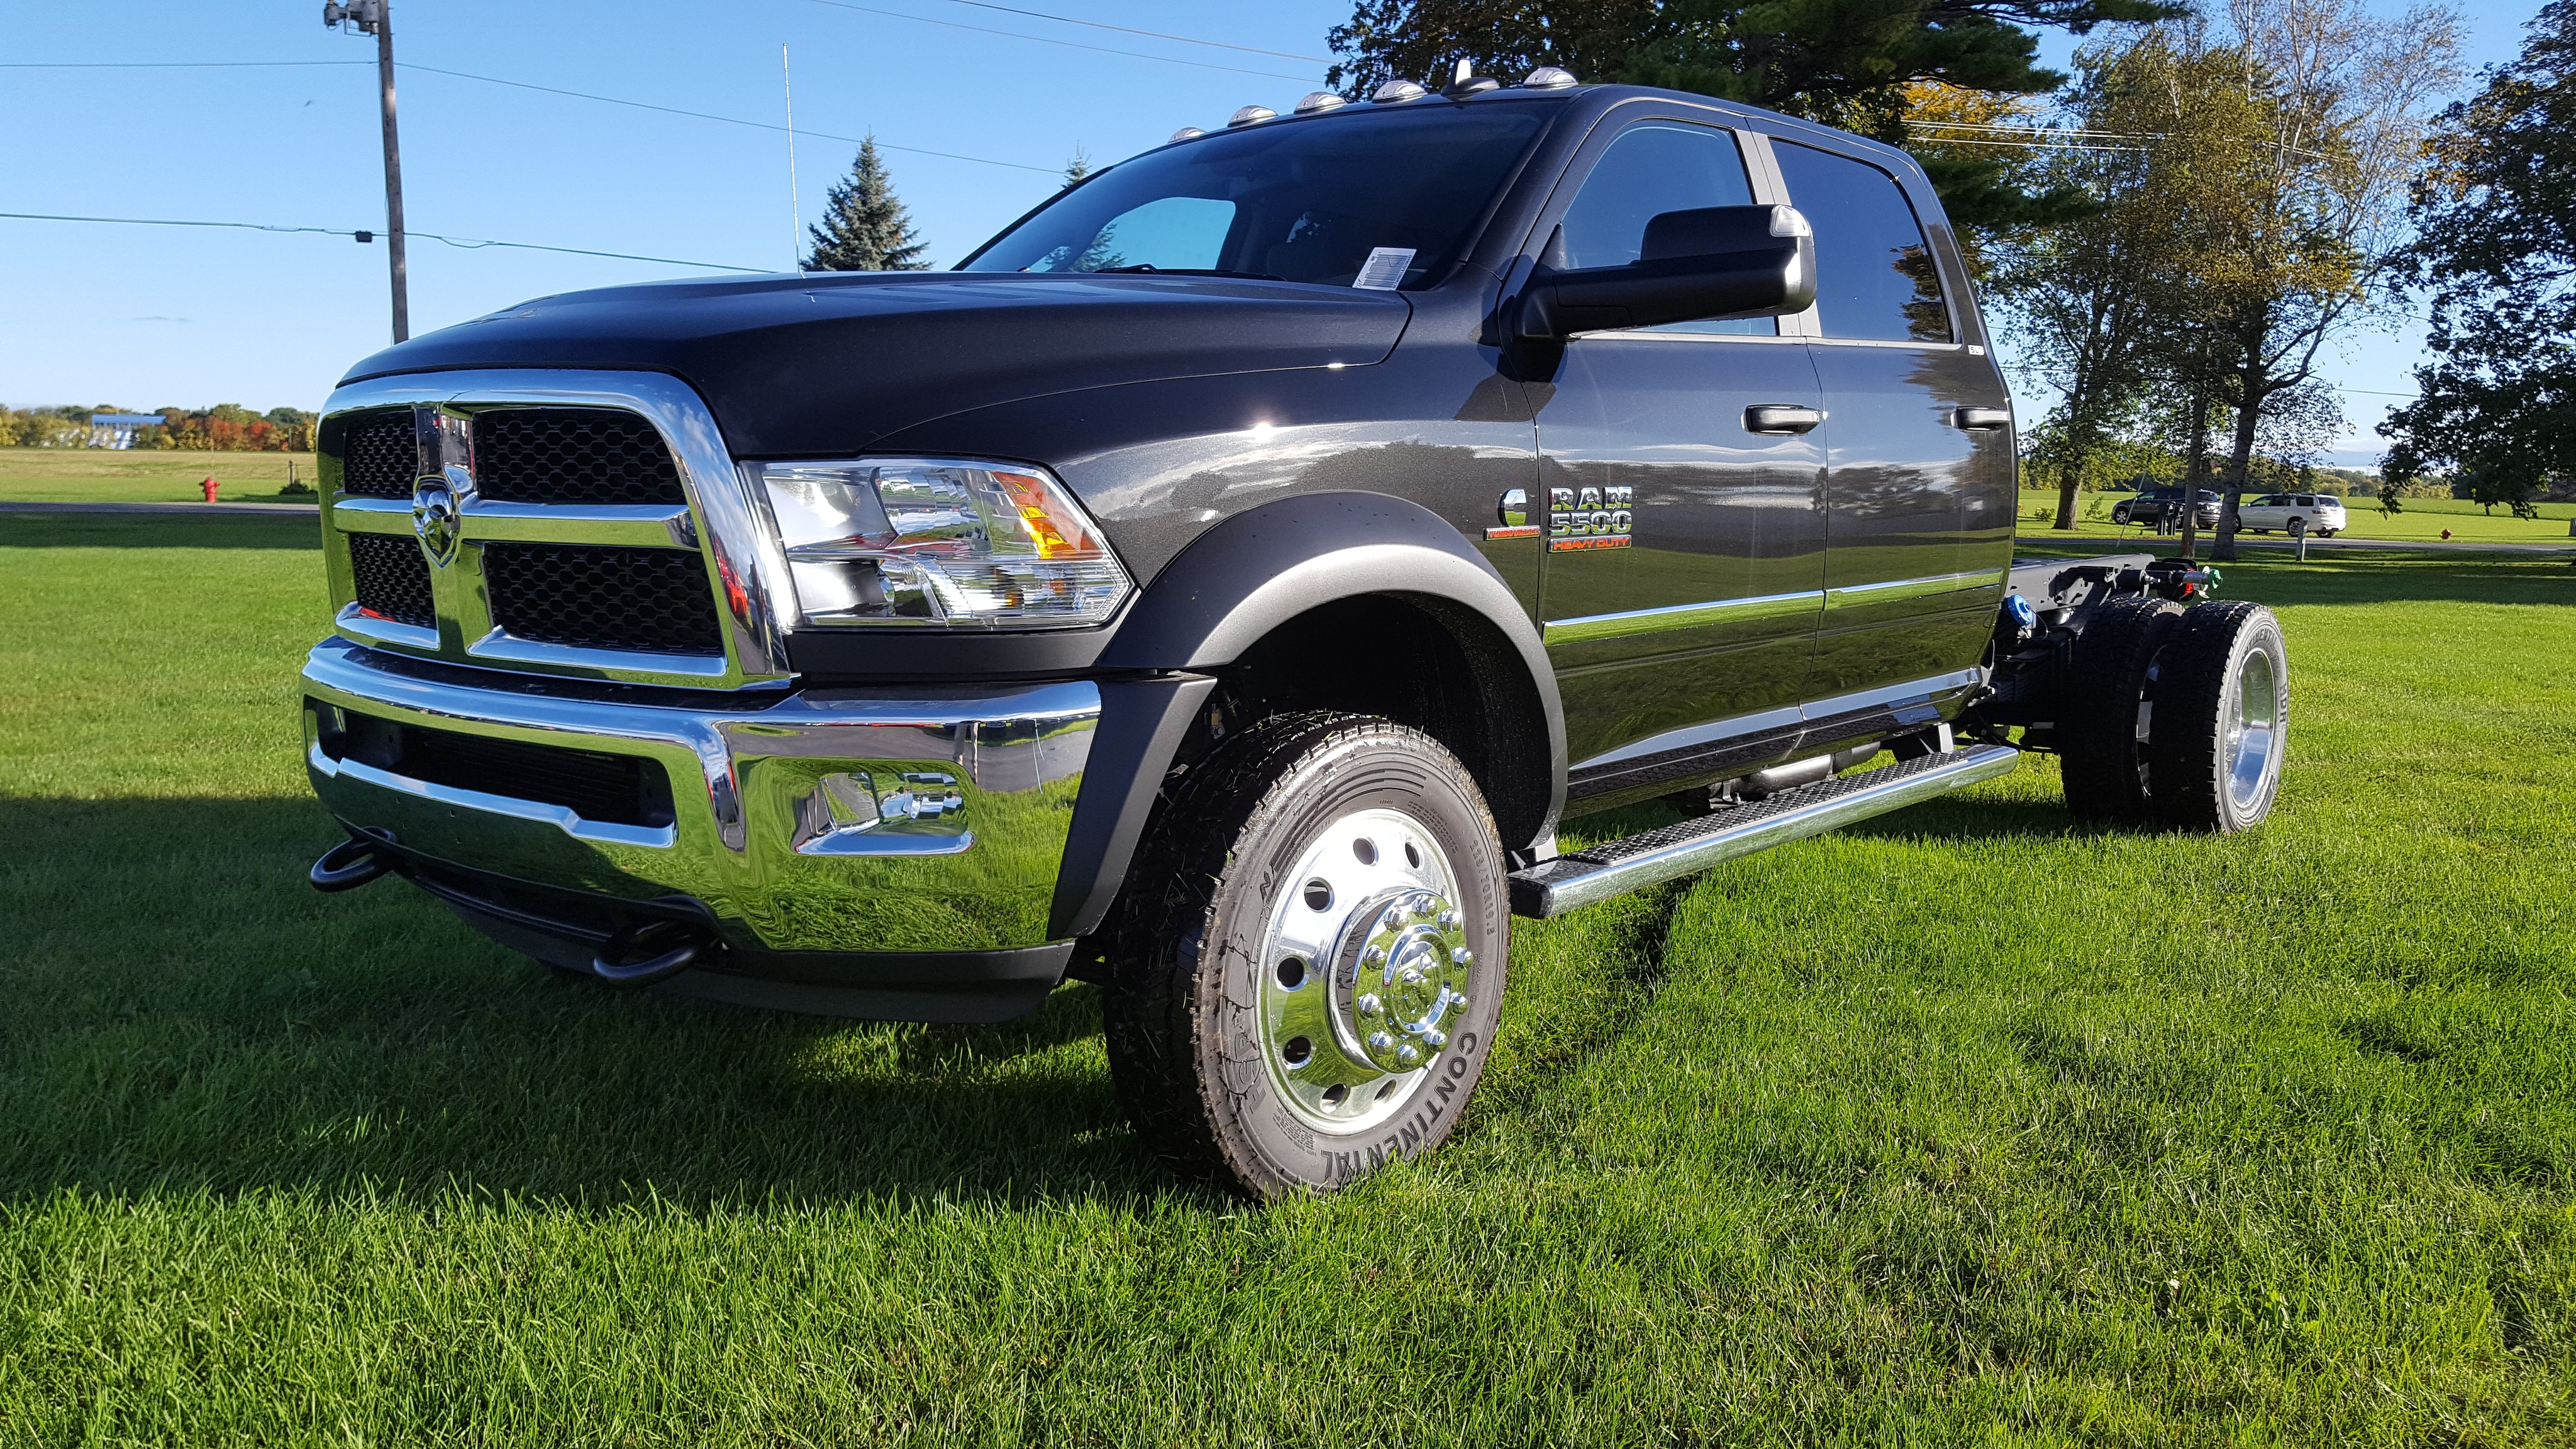 2018 Ram 5500 Chassis Cab 5500 SLT CHASSIS CREW CAB 4X4 173.4 WB Crew Cab